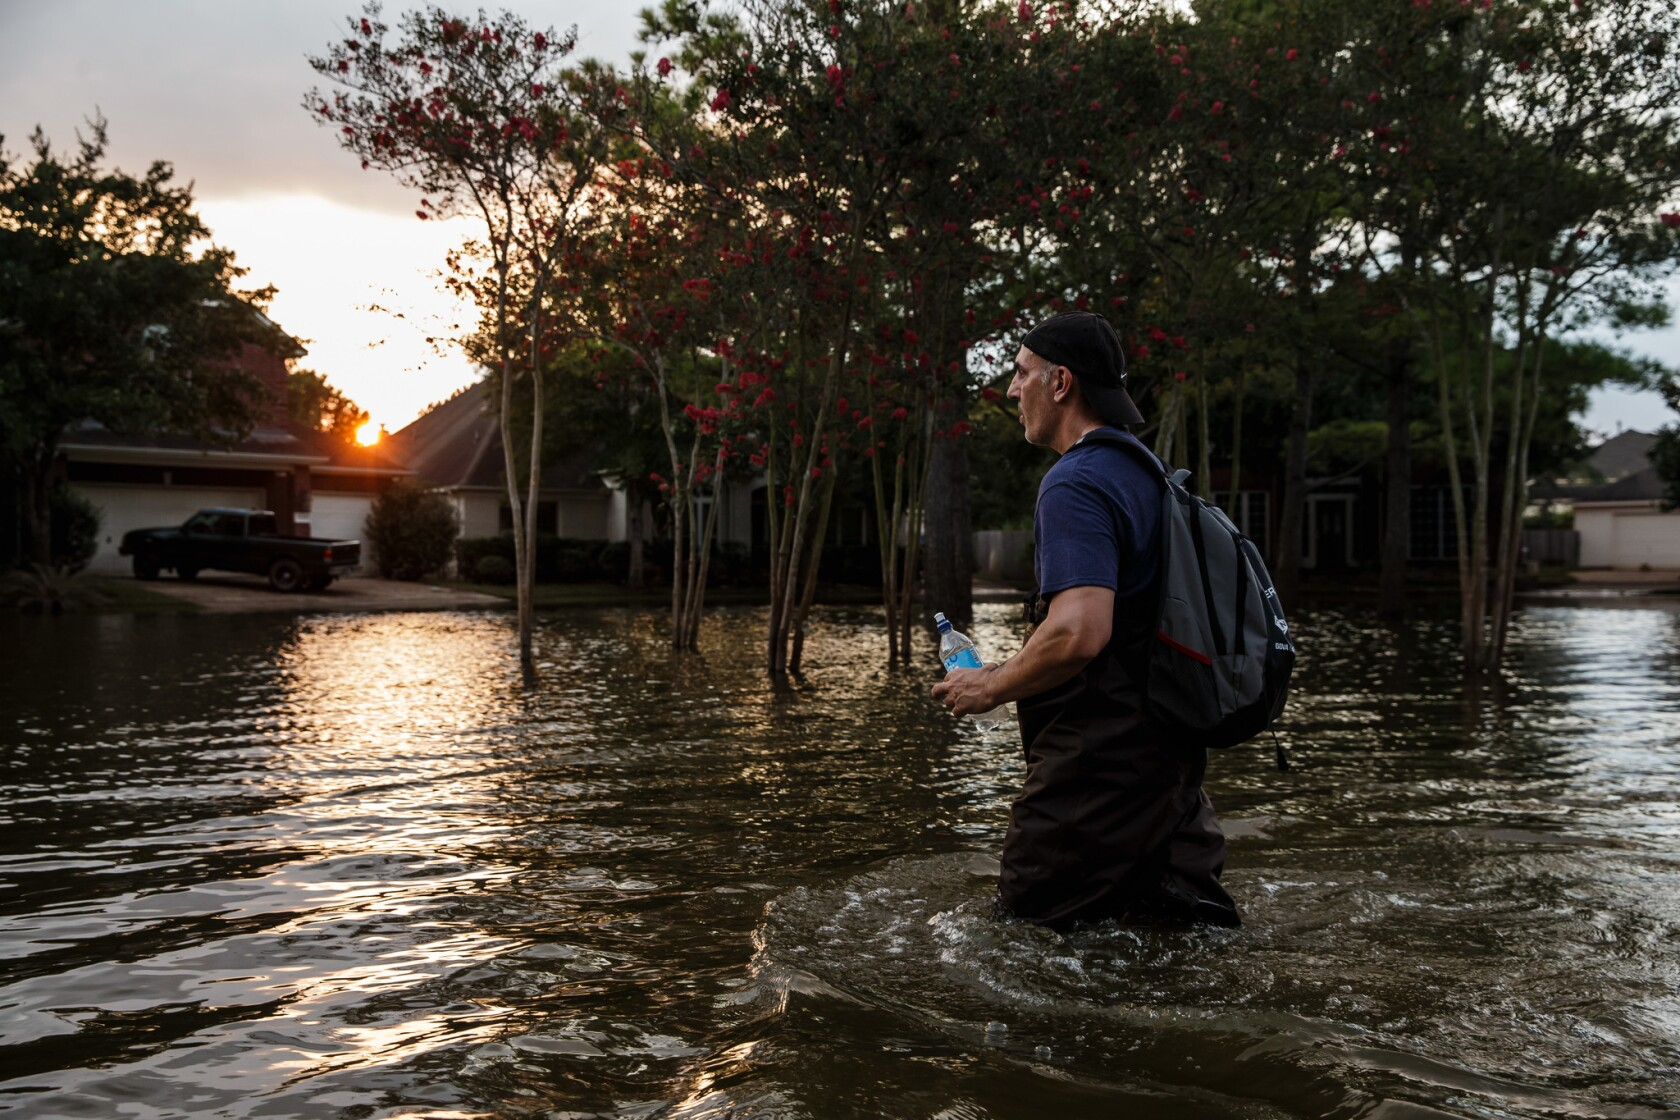 Harvey is likely to be the second-most costly natural